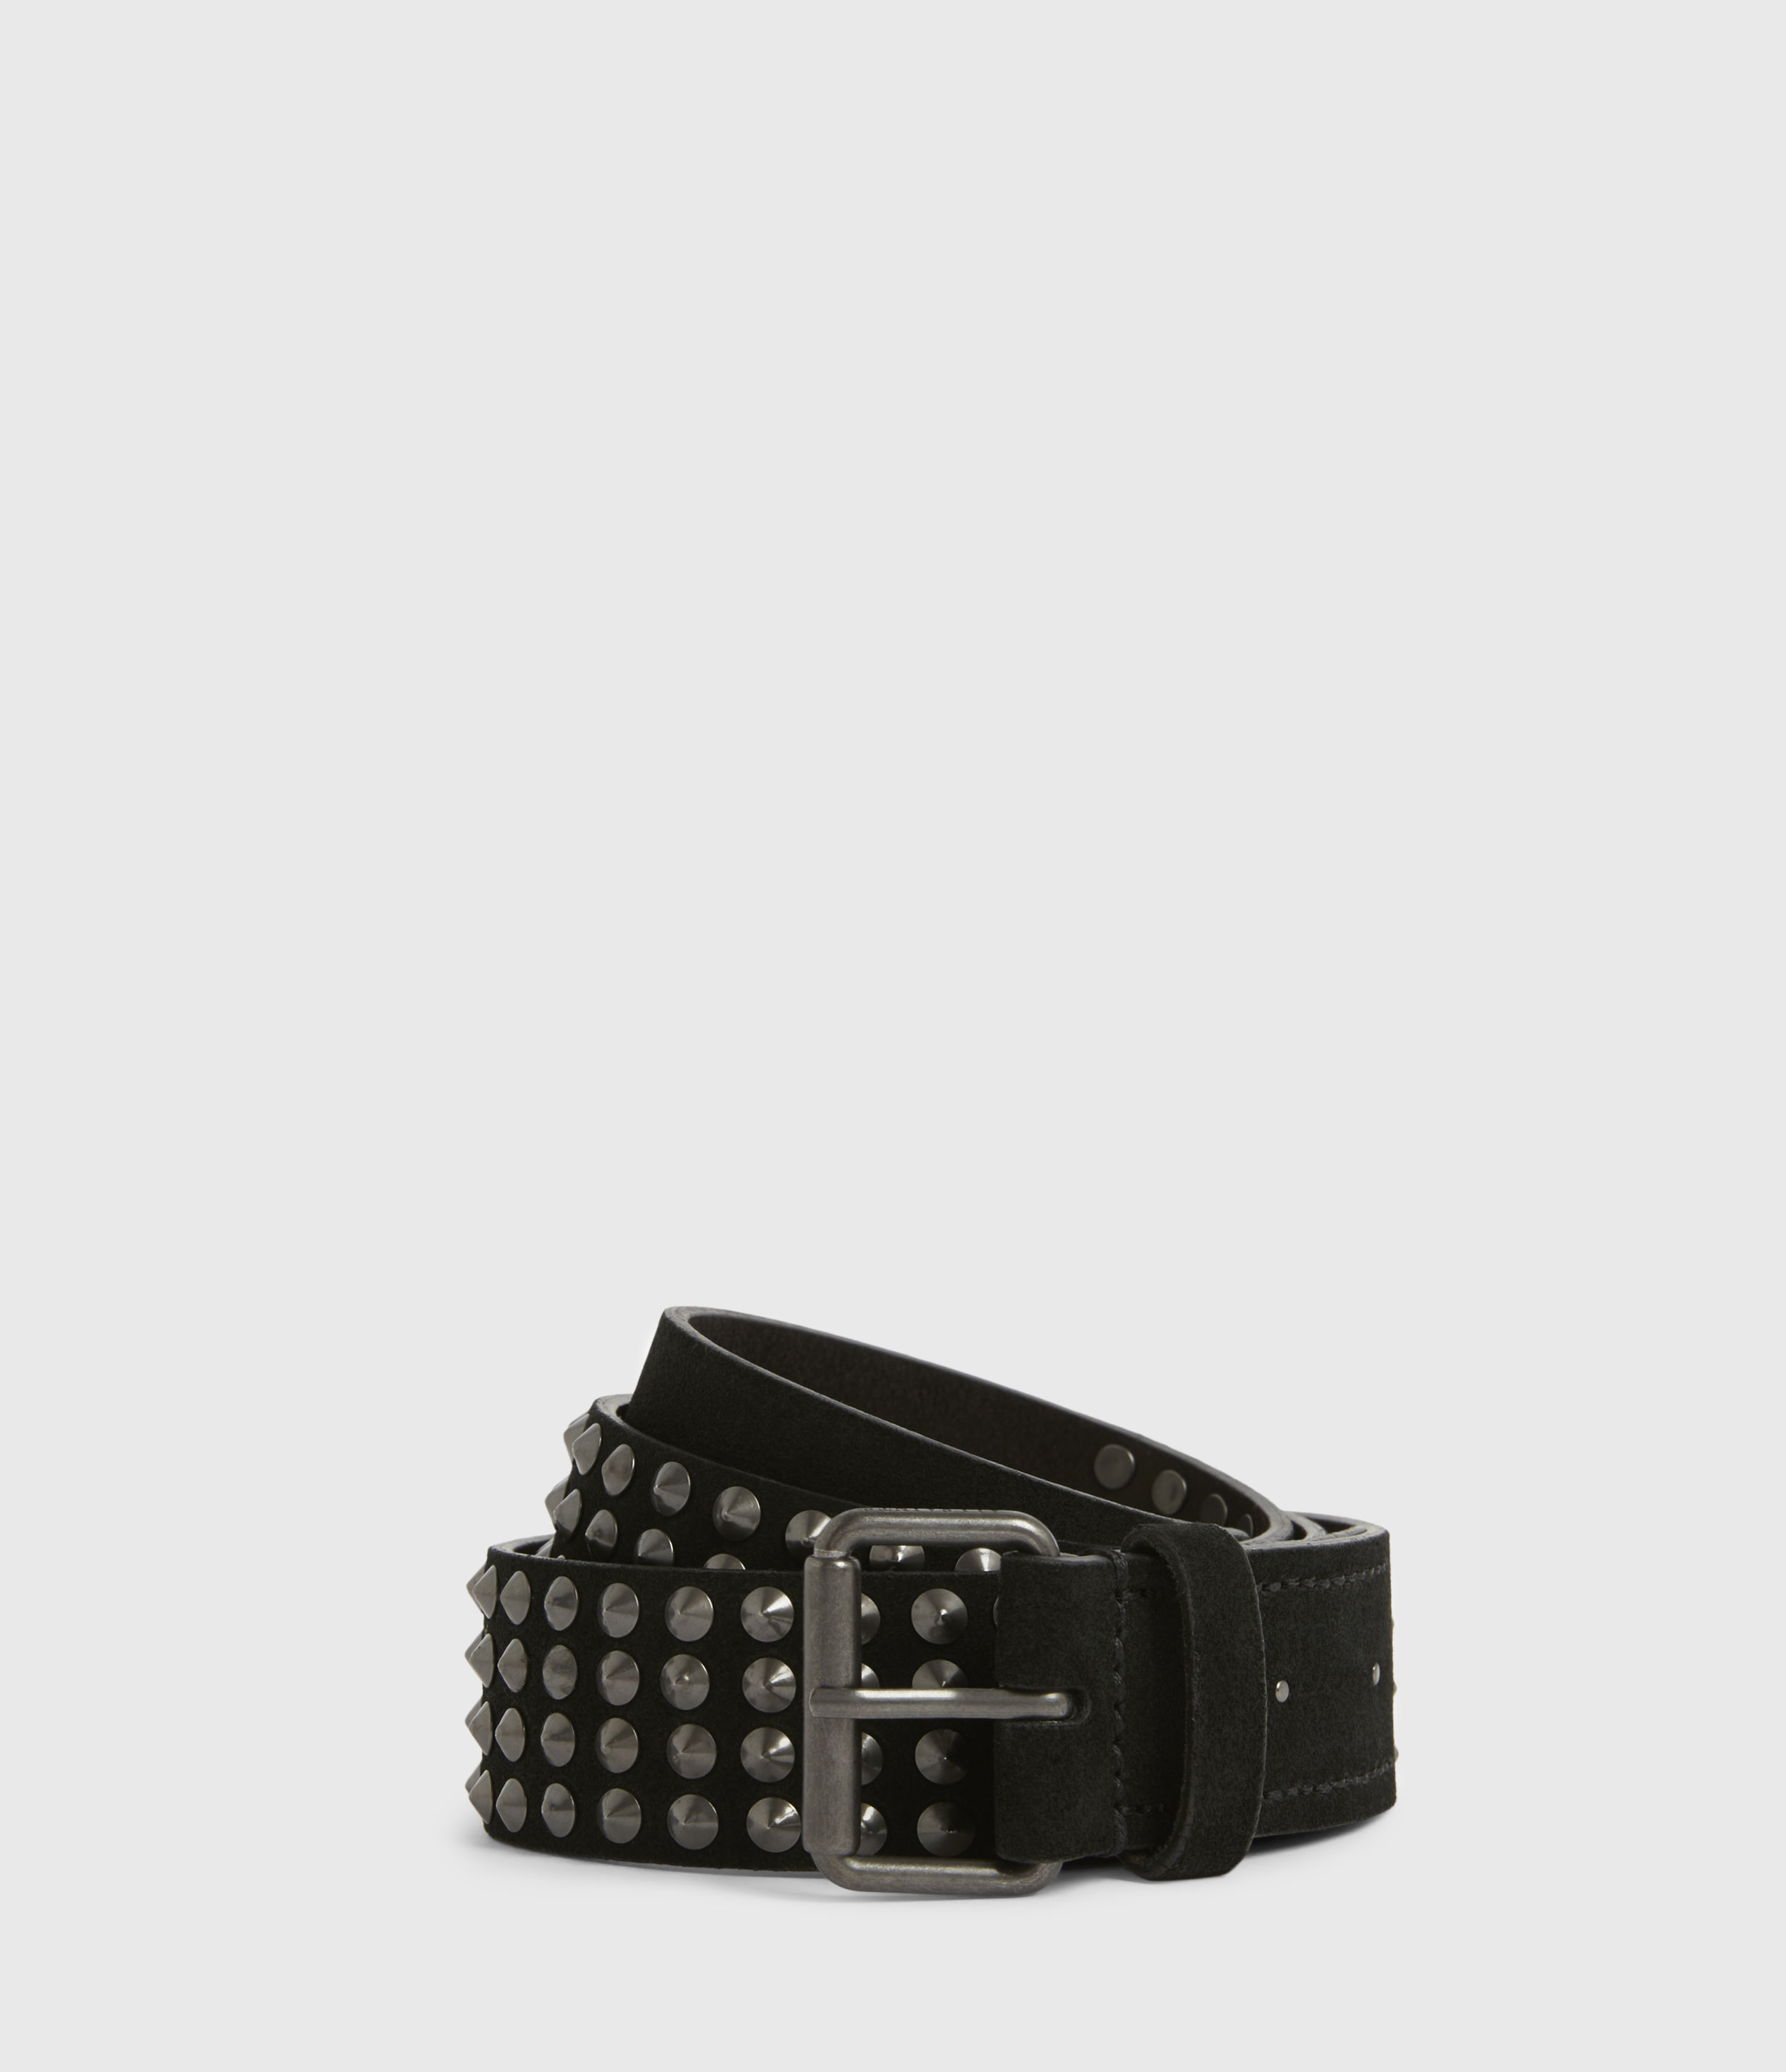 AllSaints West Leather Belt